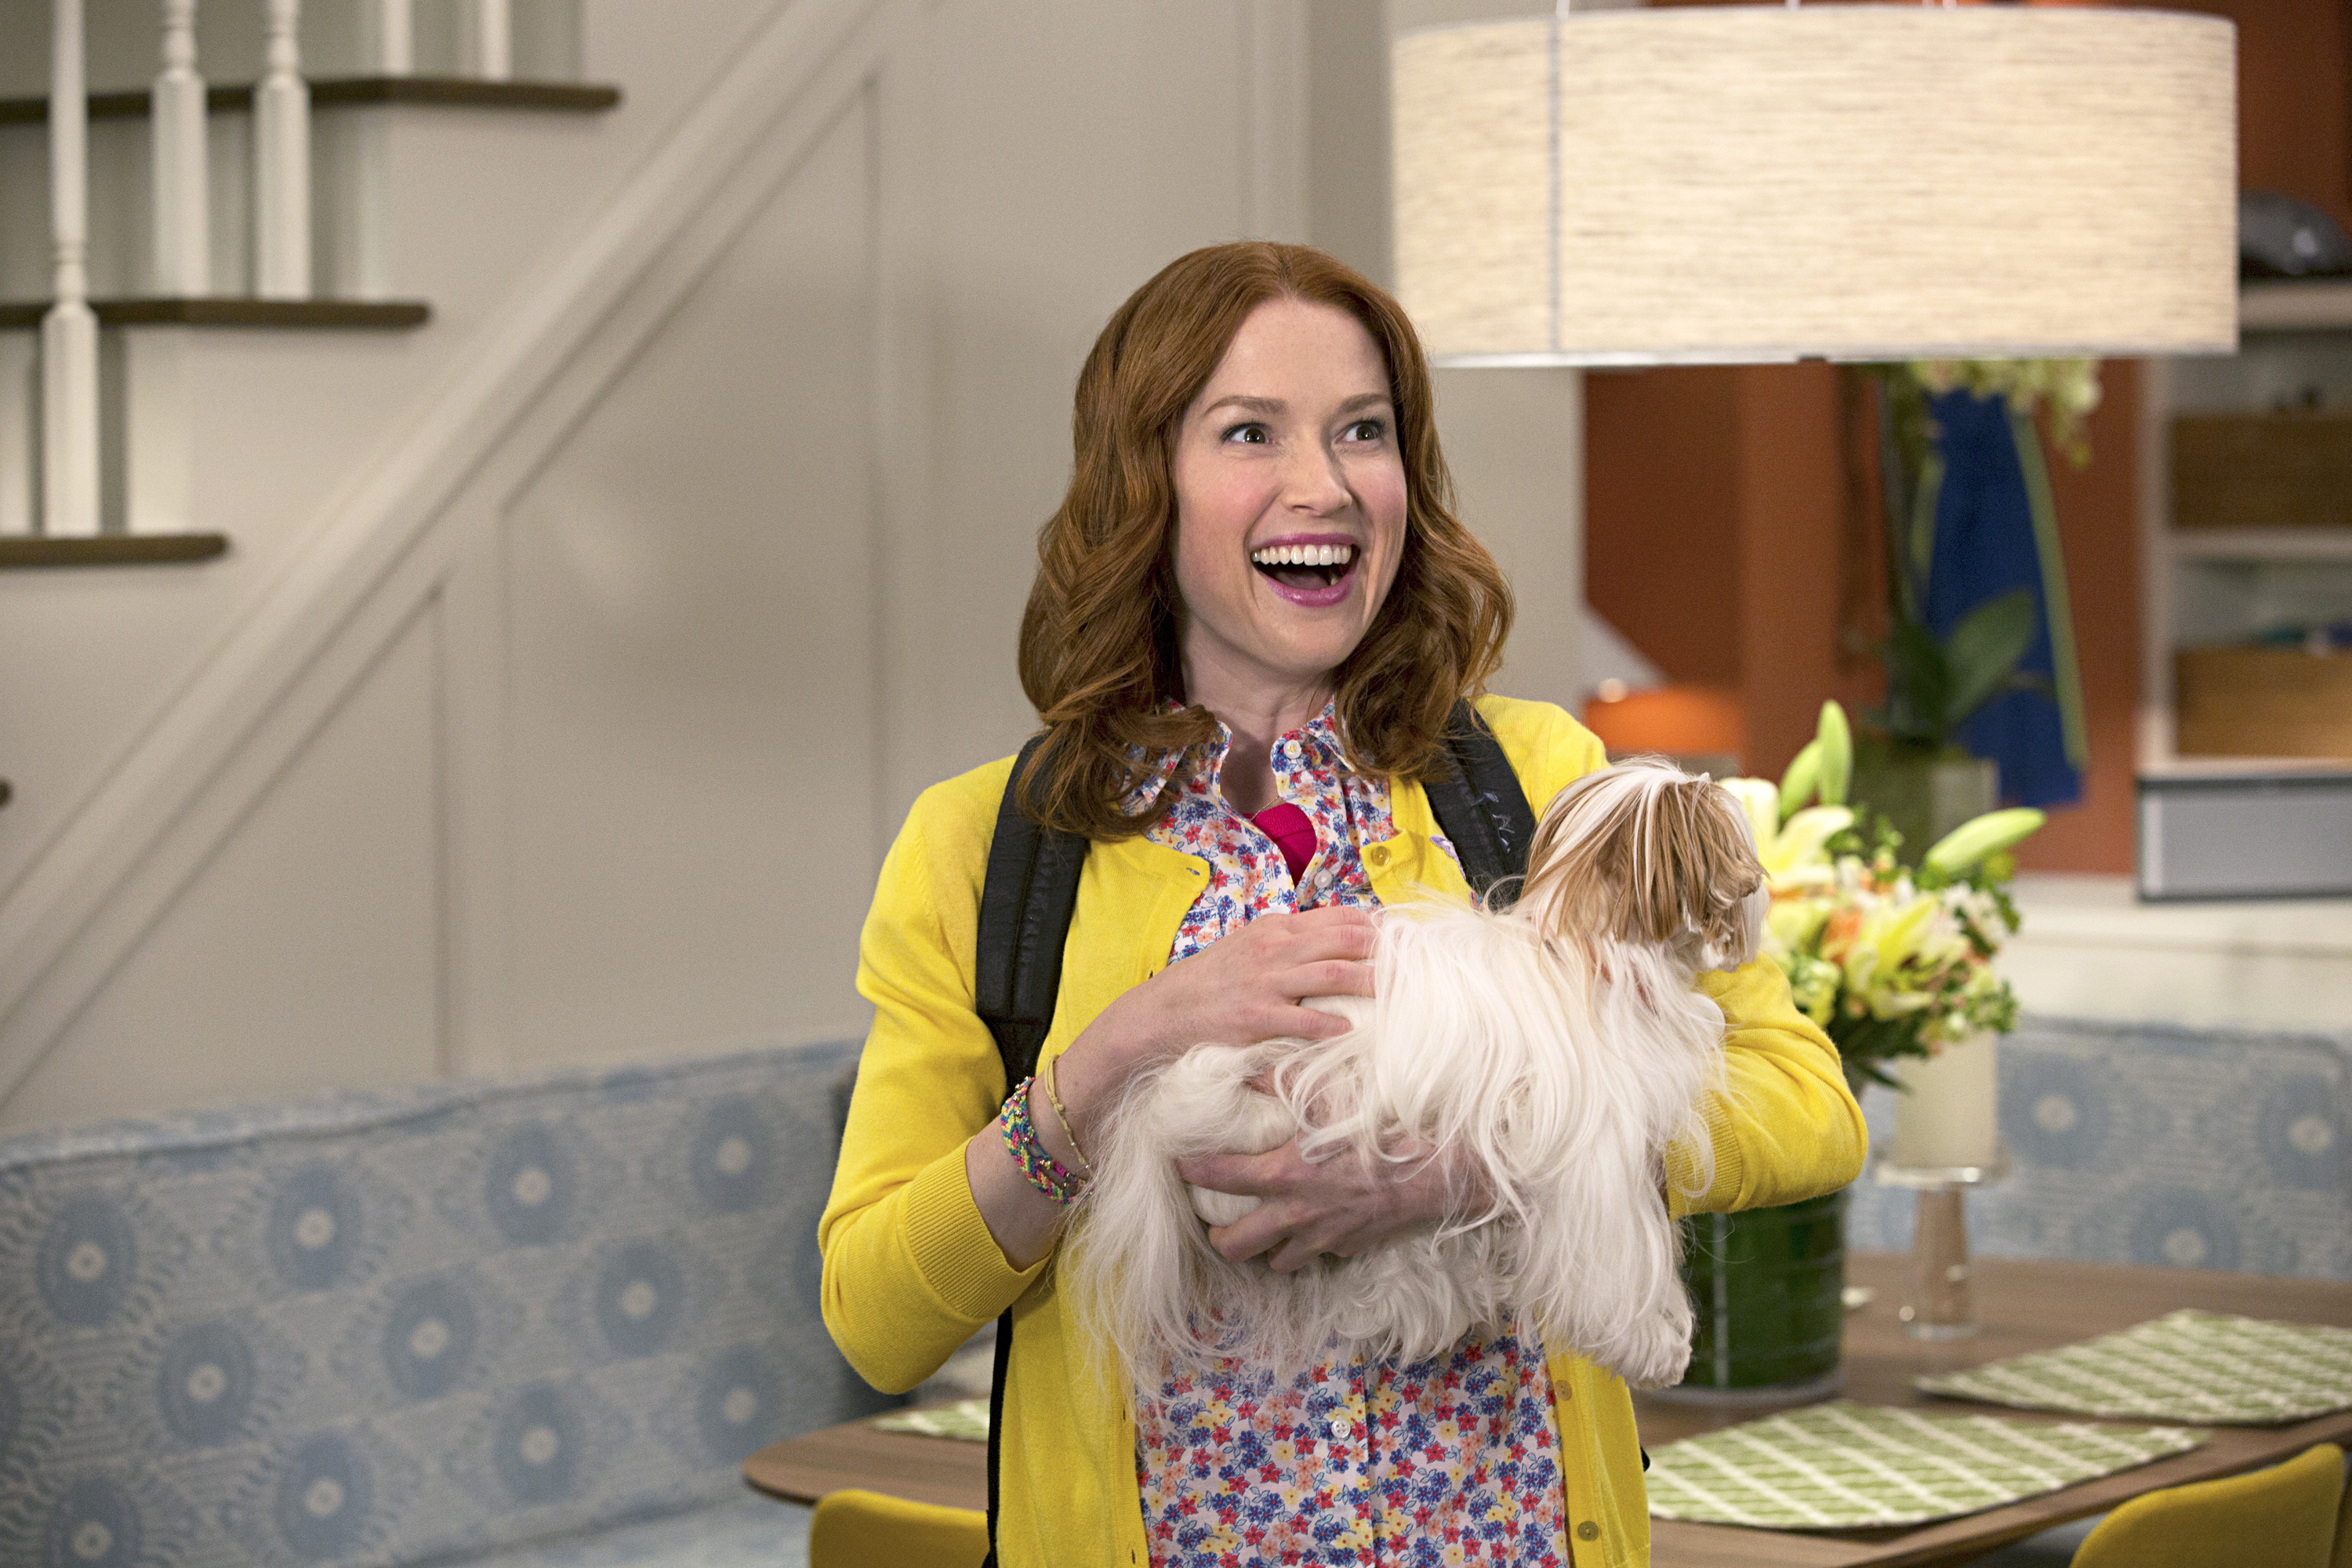 Ellie Kemper radiates good cheer in Unbreakable Kimmy Schmidt,                     co-produced by Tina Fey